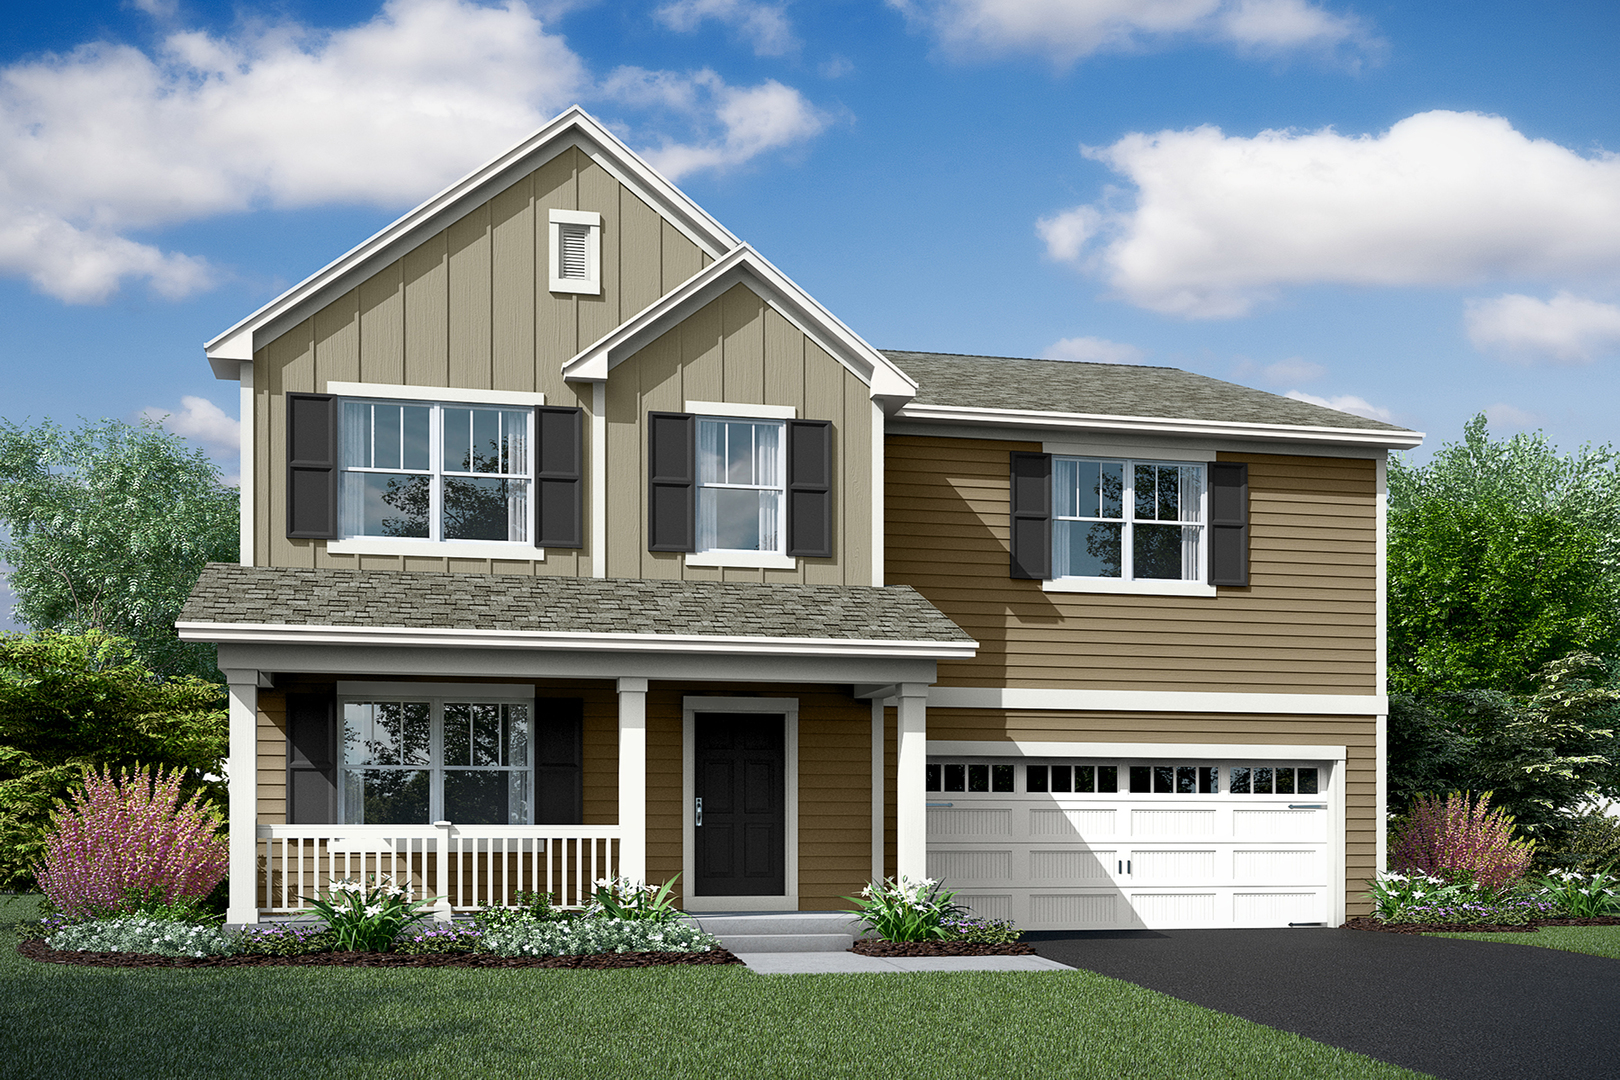 Photo for 326 Garden Lot #11 Drive, Elgin, IL 60124 (MLS # 10577128)